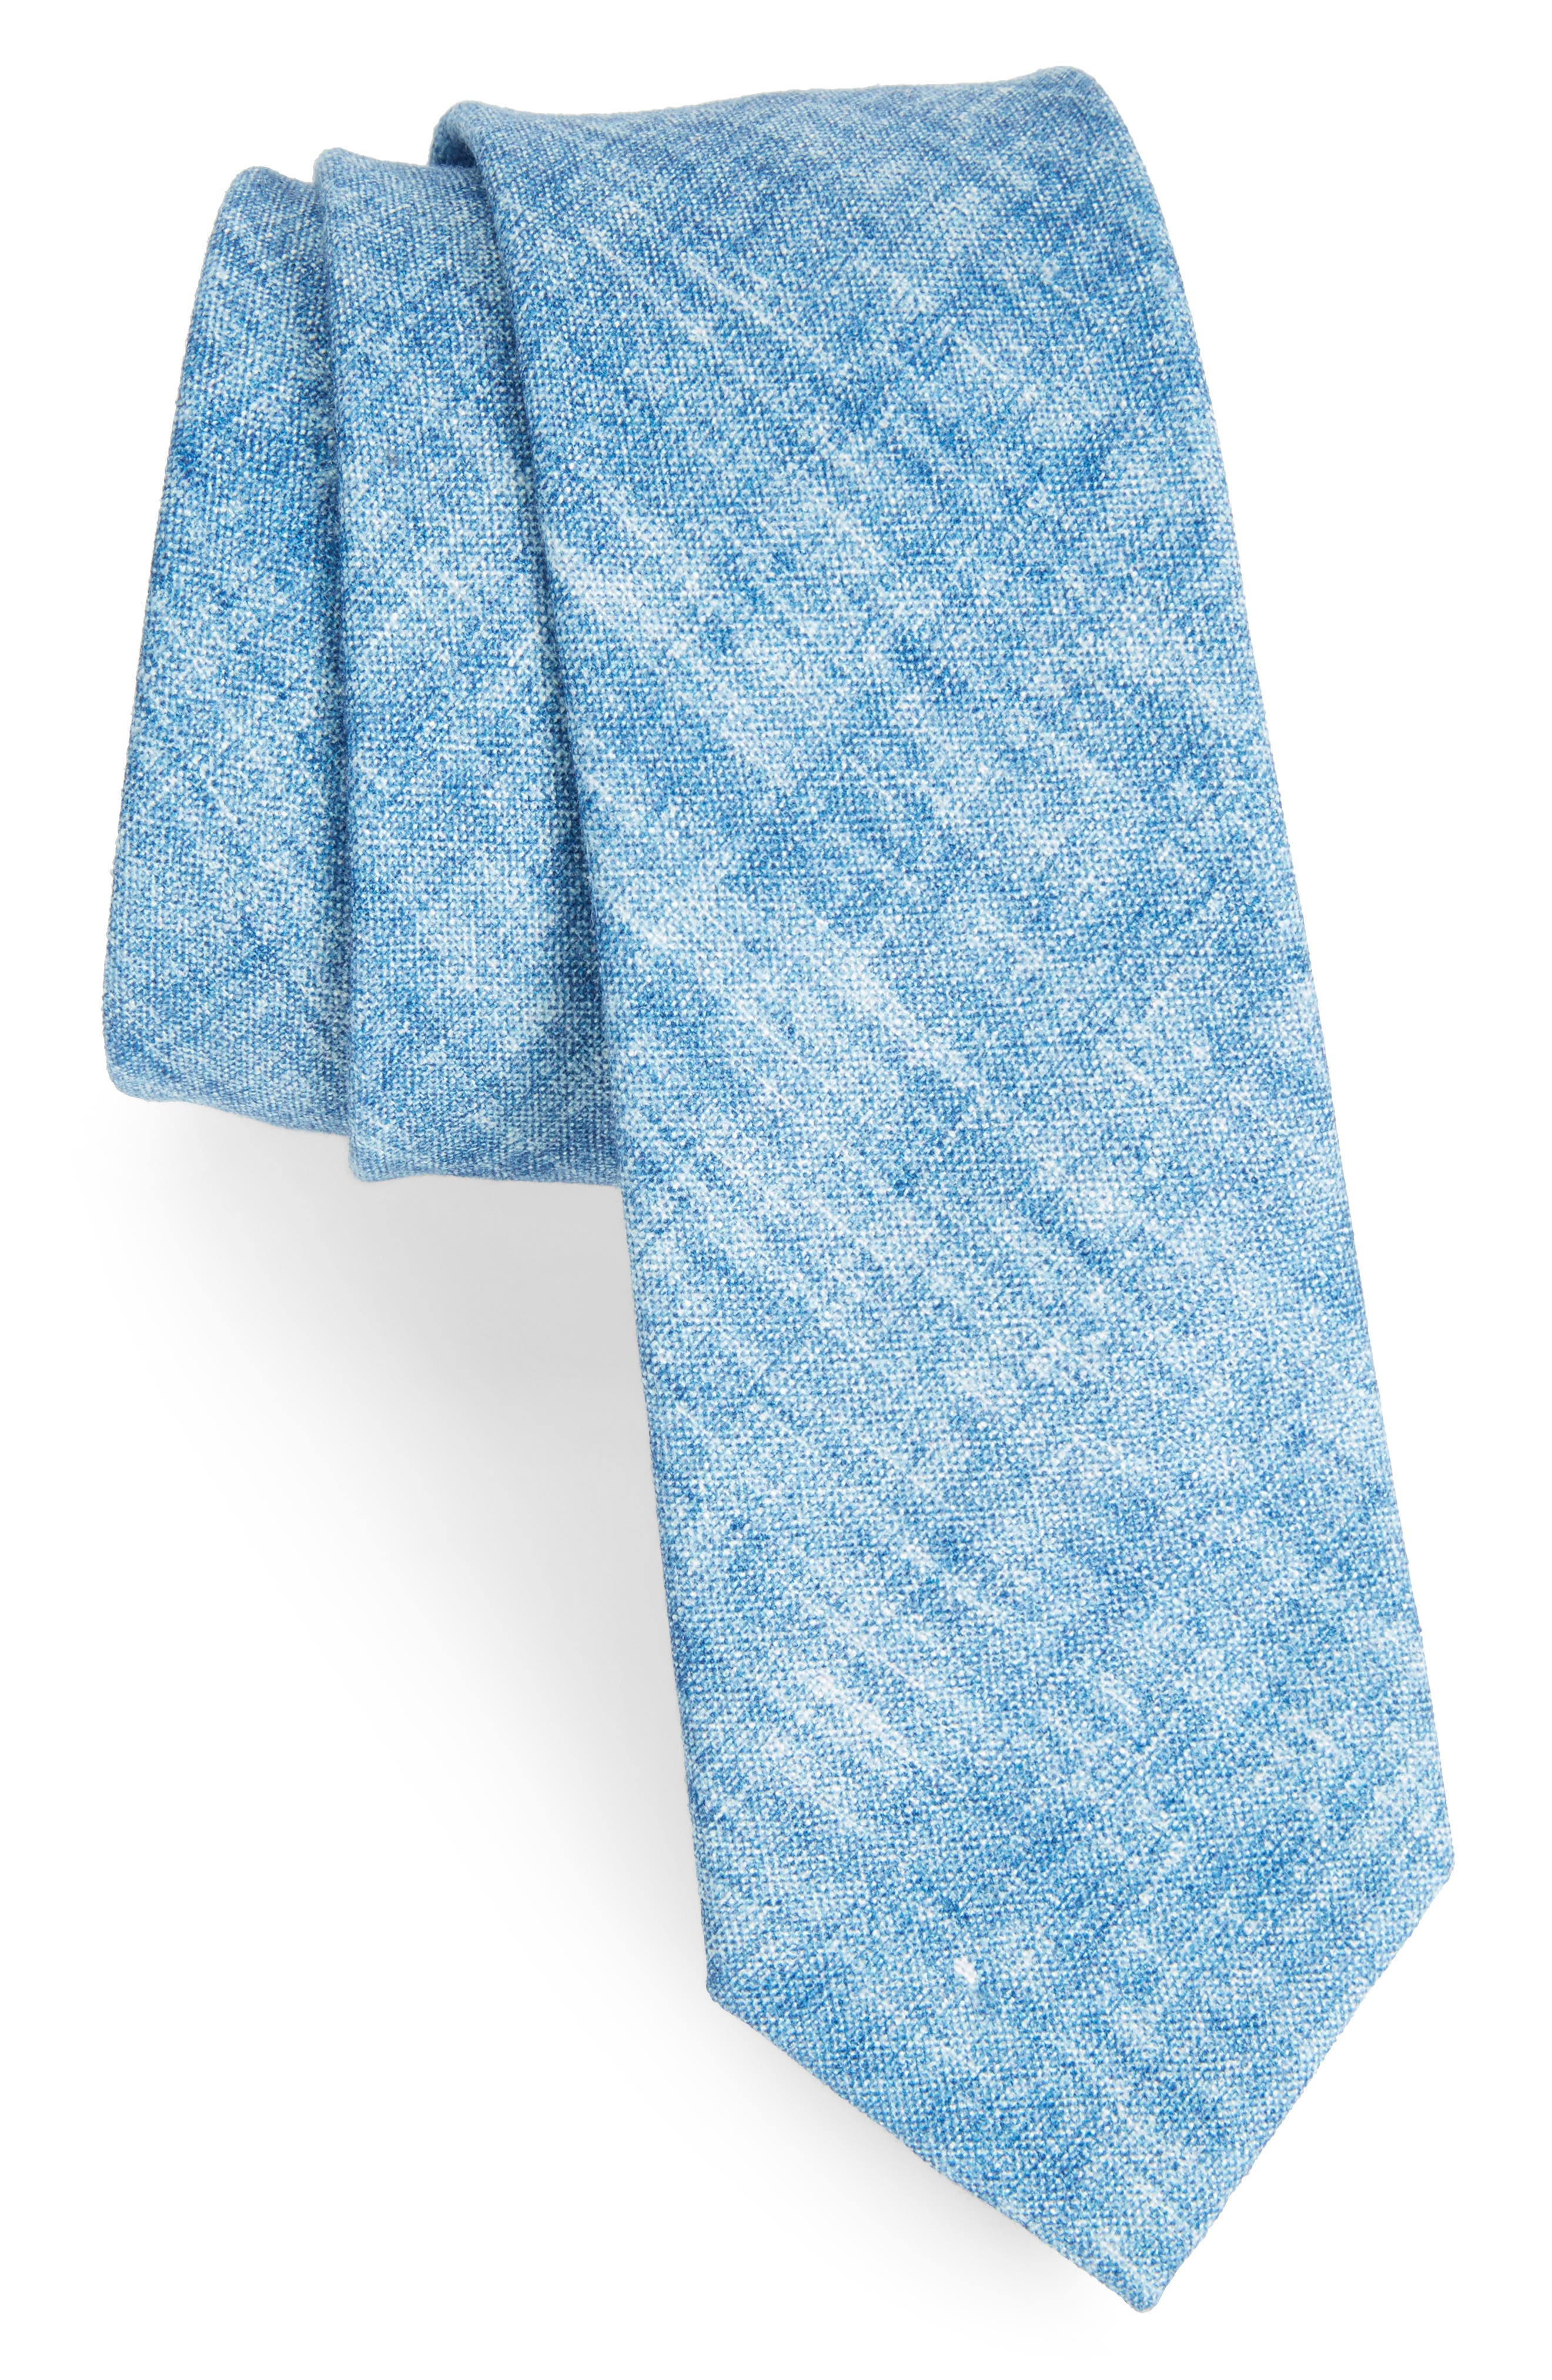 Alternate Image 1 Selected - The Tie Bar Freehand Solid Linen Tie